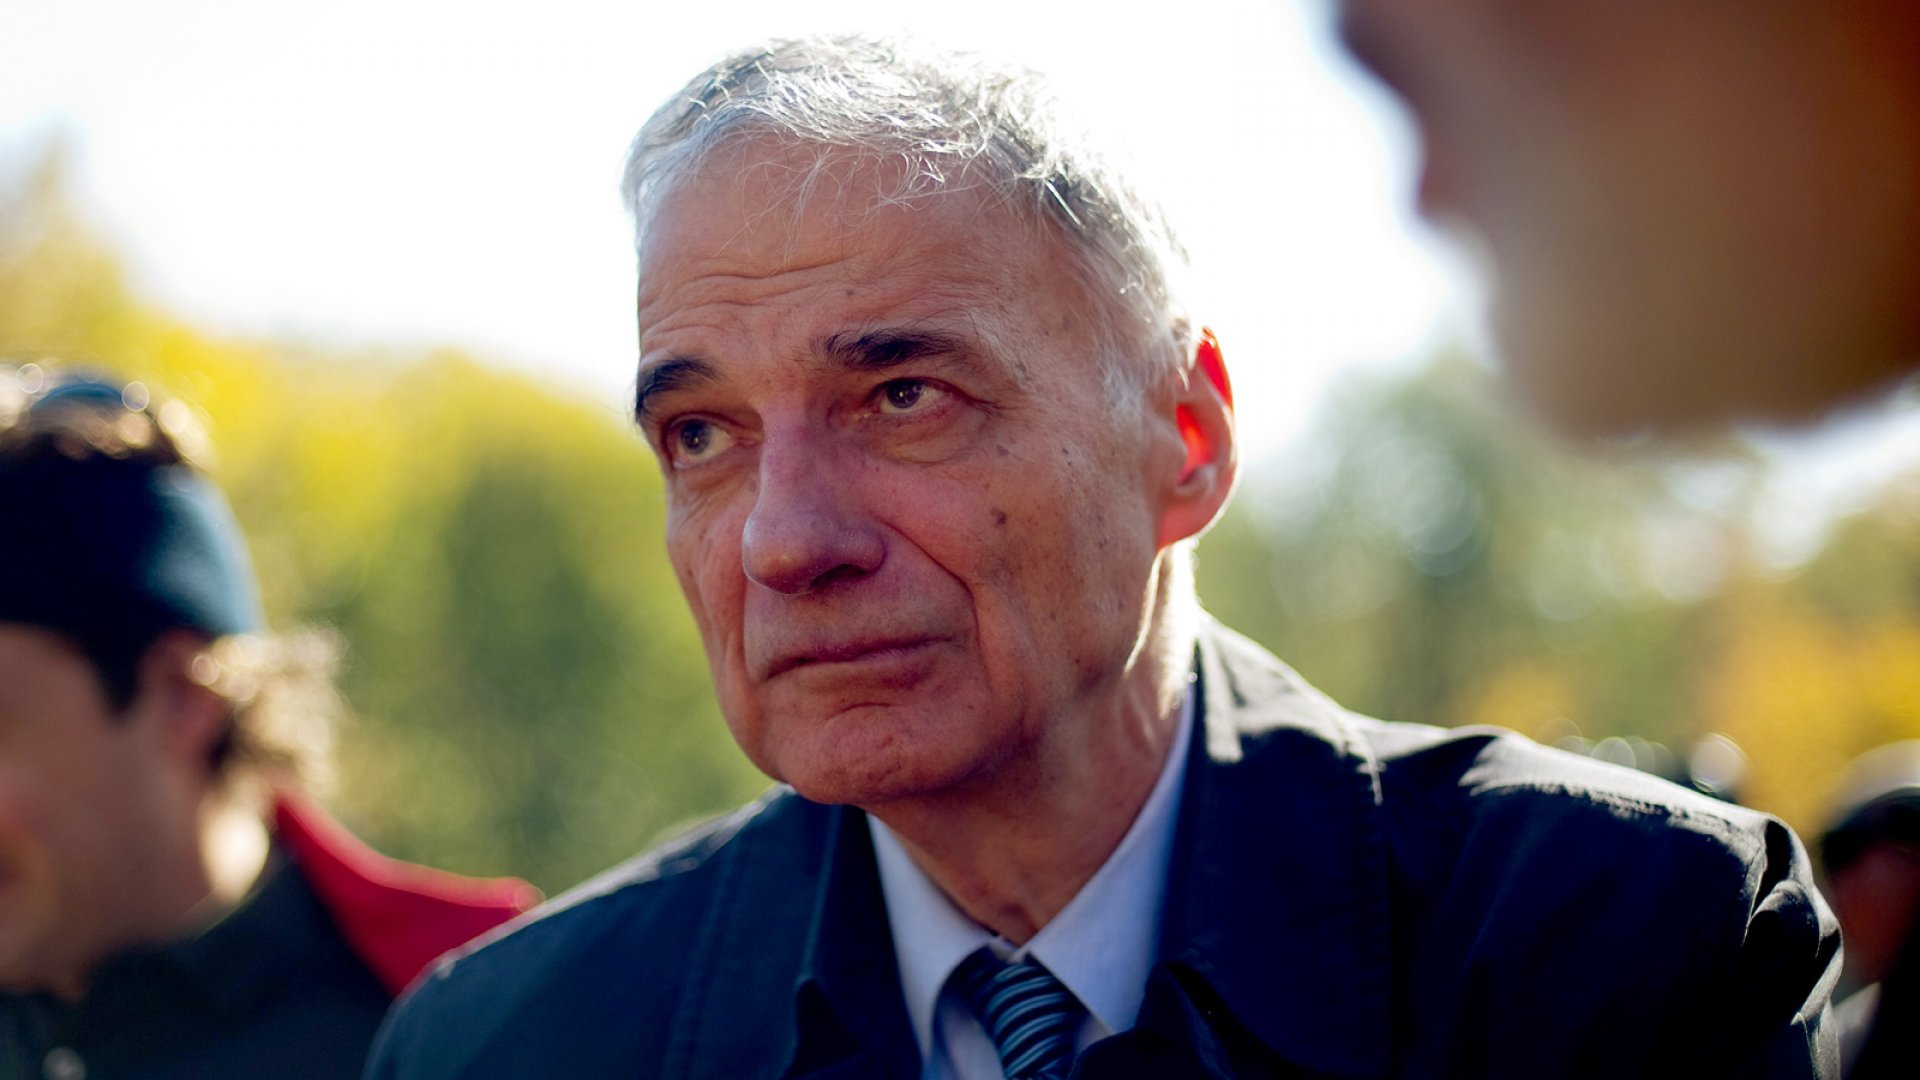 Ralph Nader on 'Simple Capitalism' and Coexisting With the Tea Party